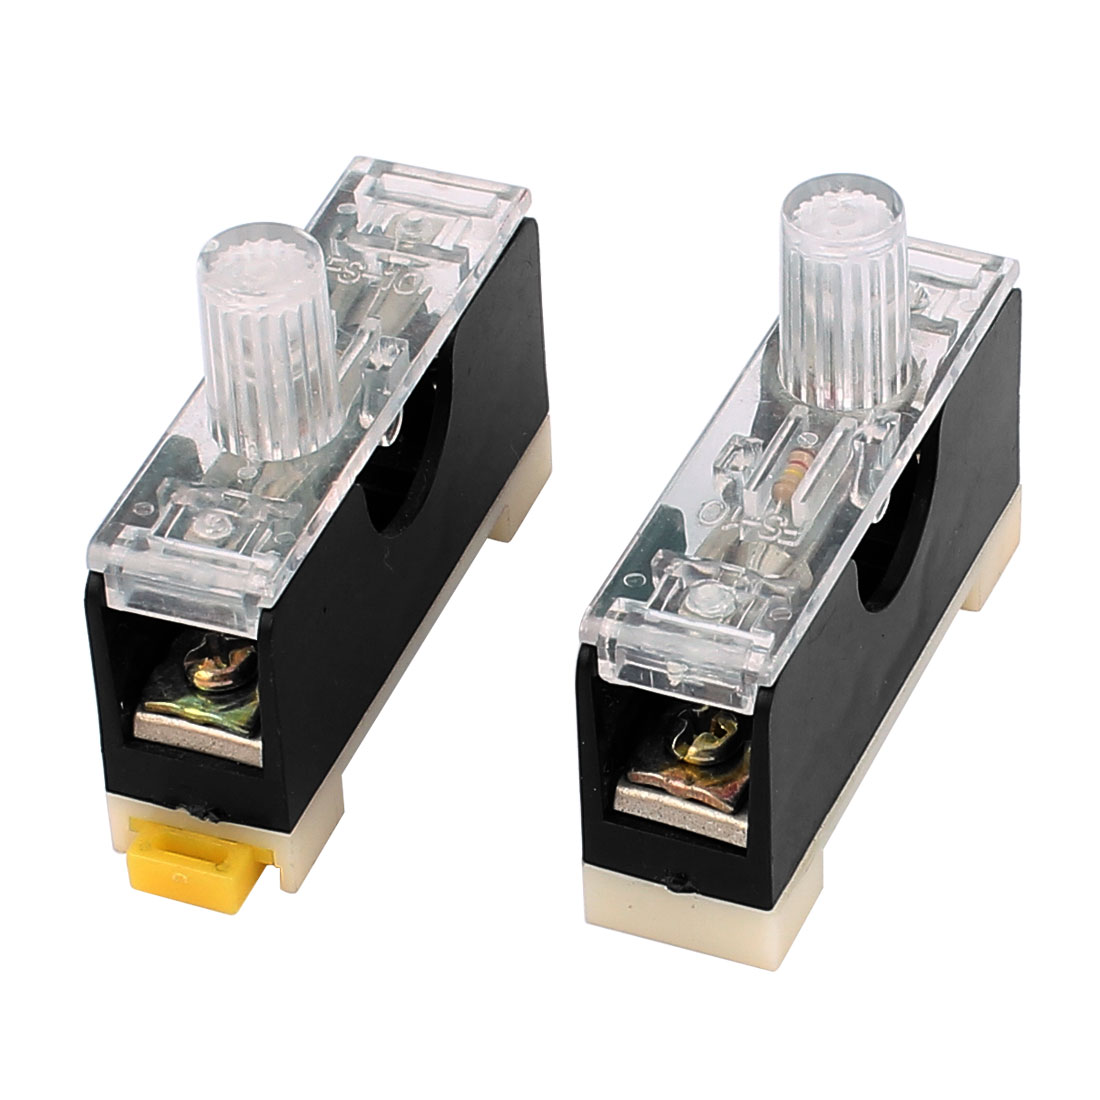 2Pcs AC 250V 10A FS-10 DIN Rail 6 x 30mm Hard Plastic Fuse Holder Base